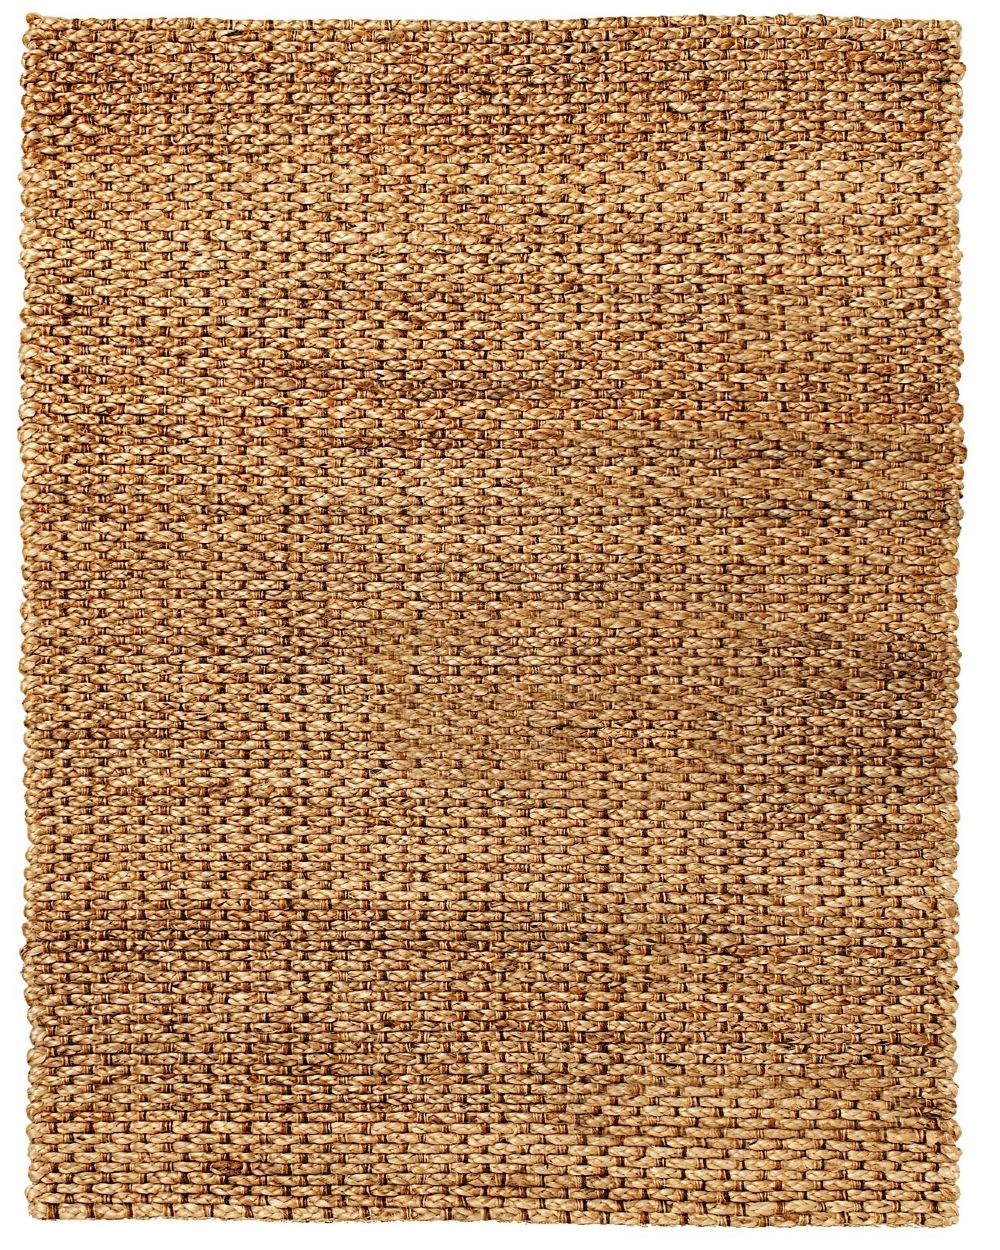 anji mountain cira natural fiber area rug collection